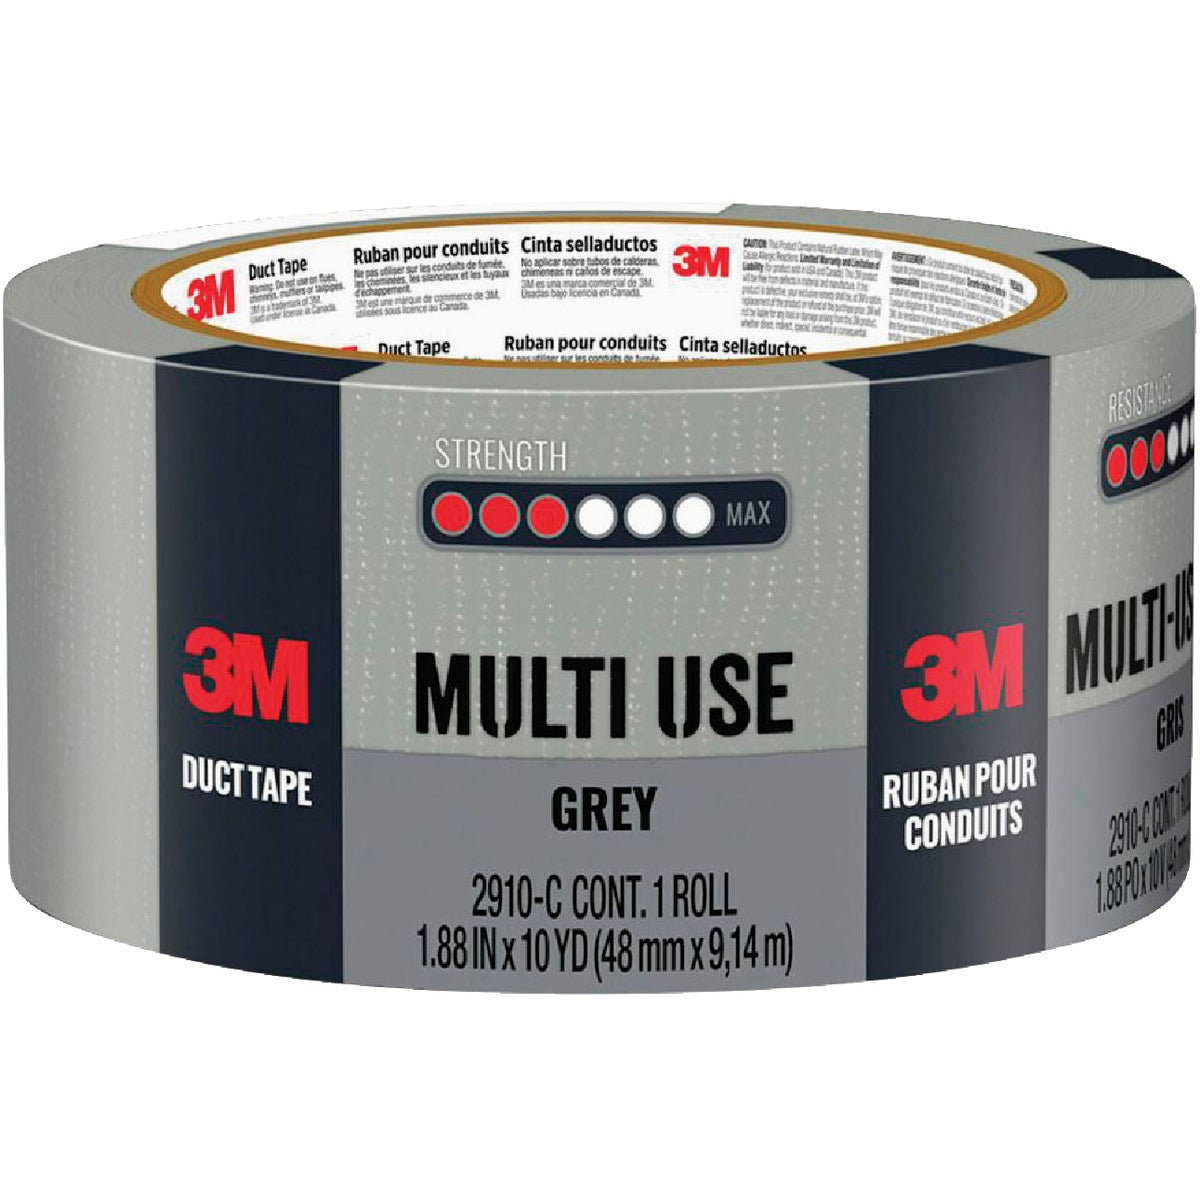 3M 48MMX10YD GRAY DUCT TAPE 1110-A